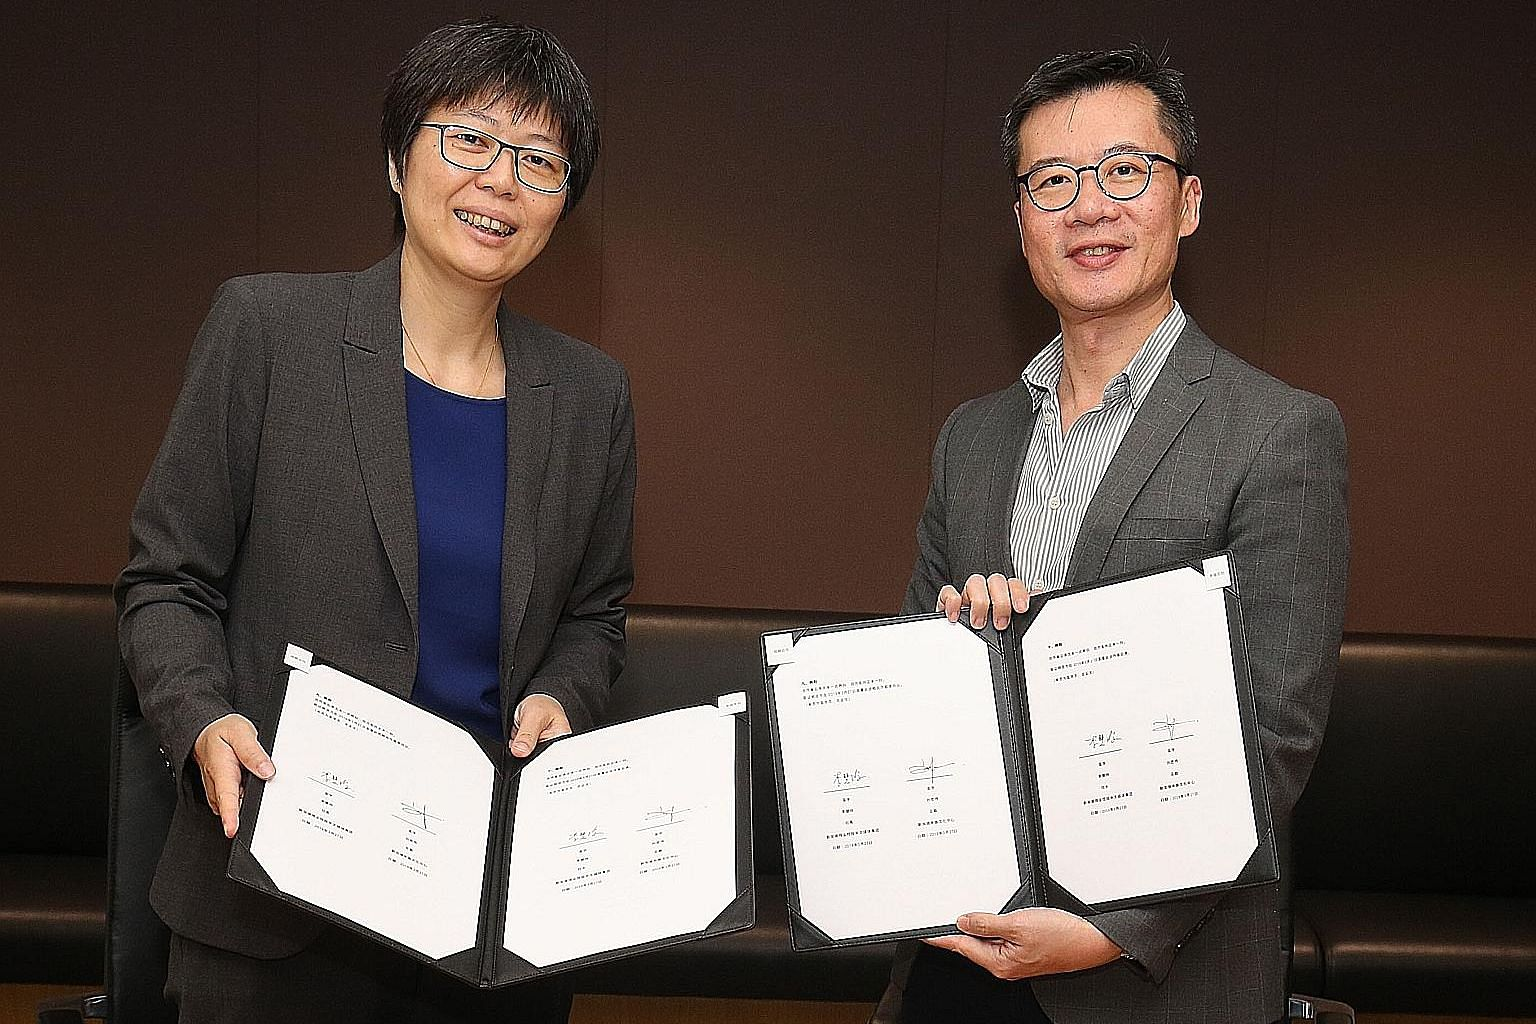 Ms Lee Huay Leng, head of SPH's Chinese Media Group (far left), and Mr Low Sze Wee, CEO of the Singapore Chinese Cultural Centre, at the signing of the memorandum of understanding on Wednesday. The partnership aims to introduce a wider variety of pro